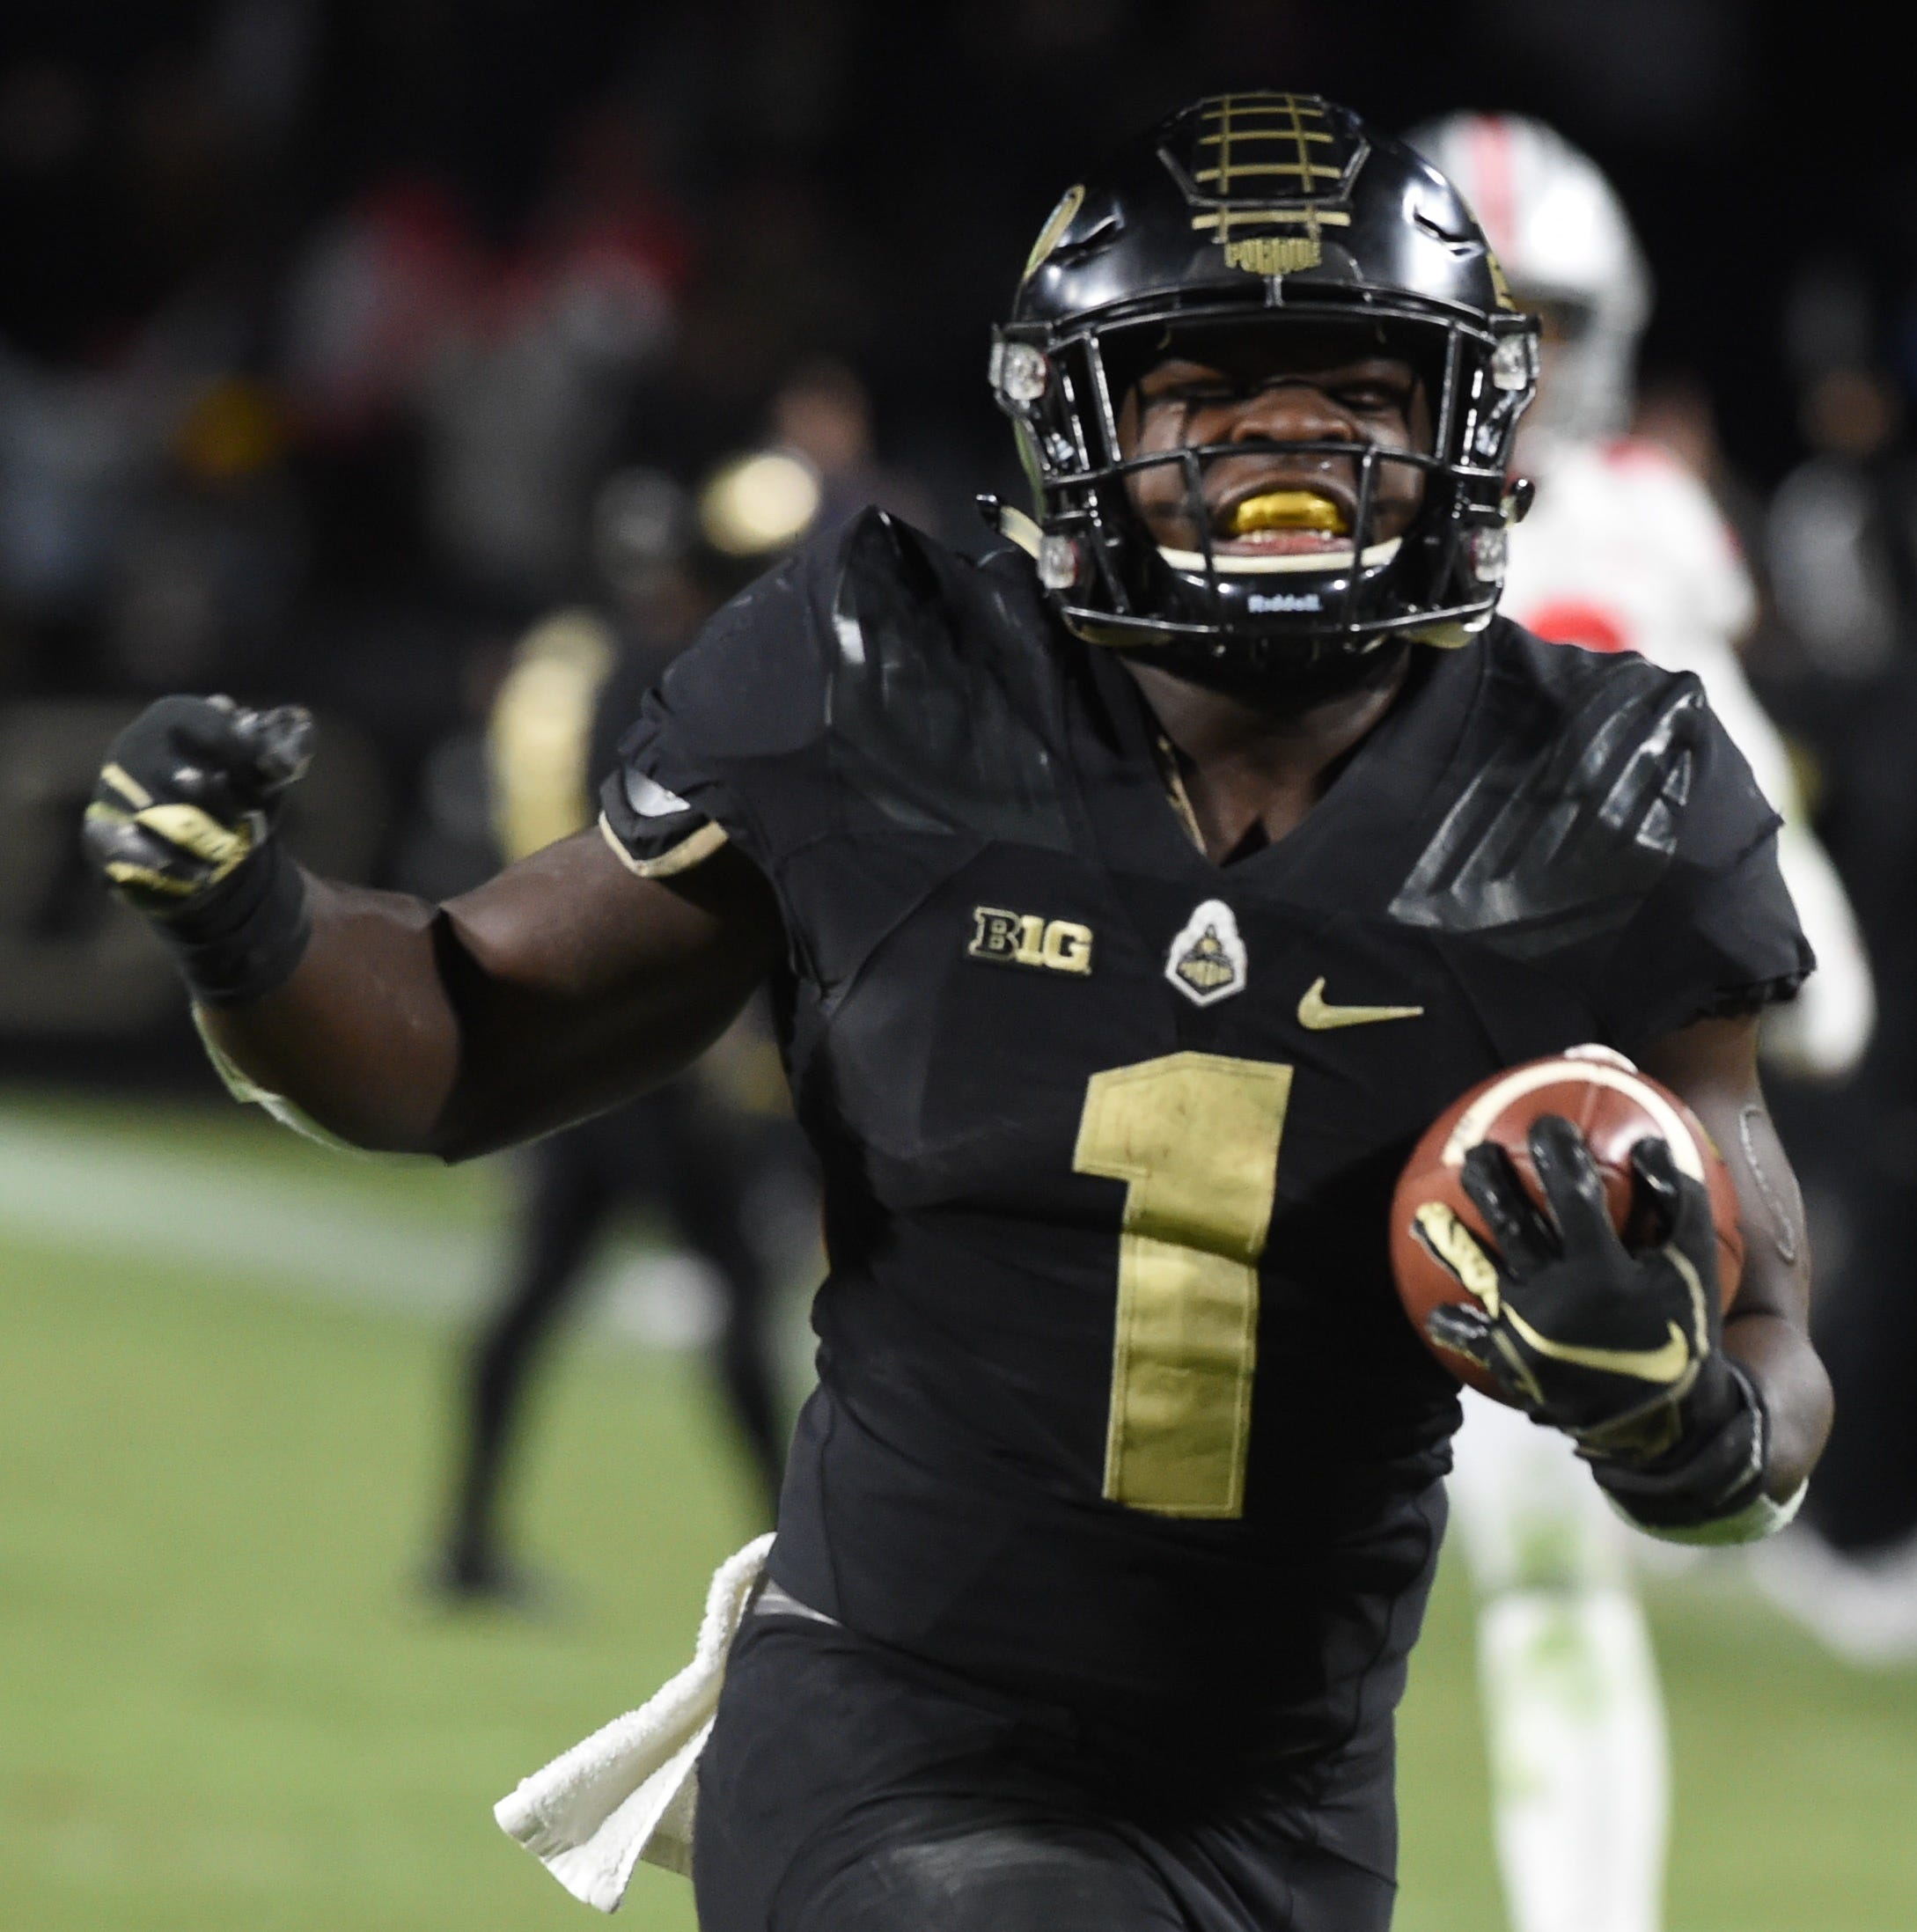 Purdue football 49, No. 2 Ohio State 20 | The day after